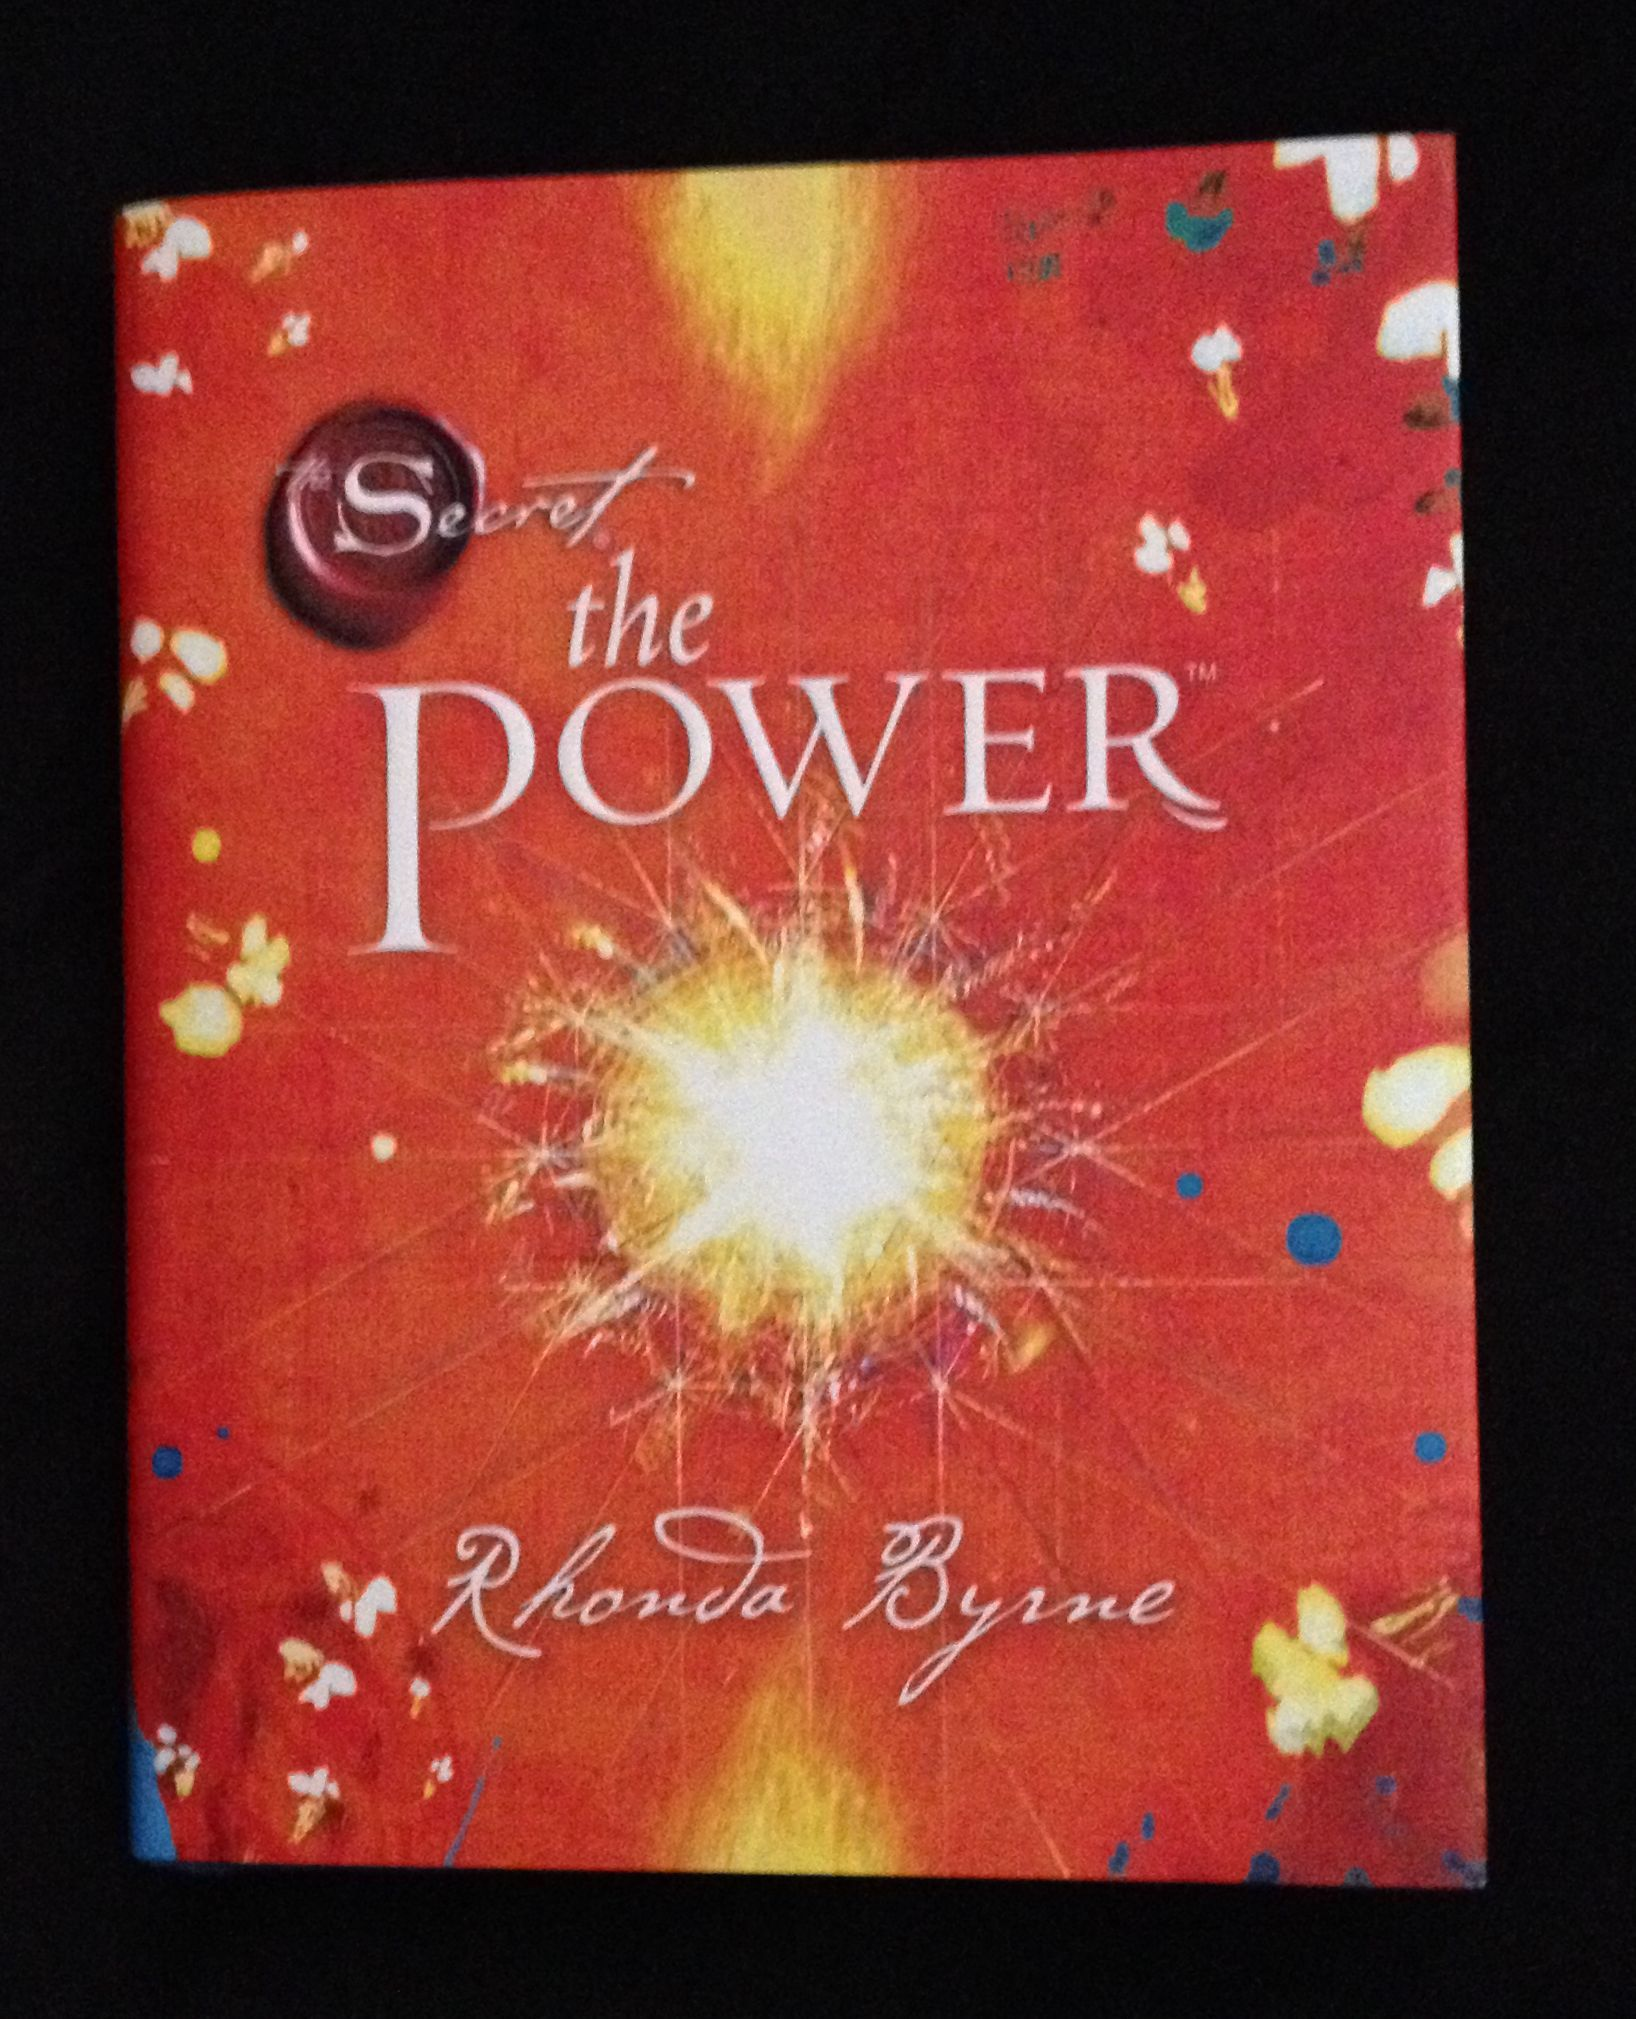 Libro El Secreto Rhonda Byrne Descargar Gratis The Power By Rhonda Byrne One Of The Best Personal Development